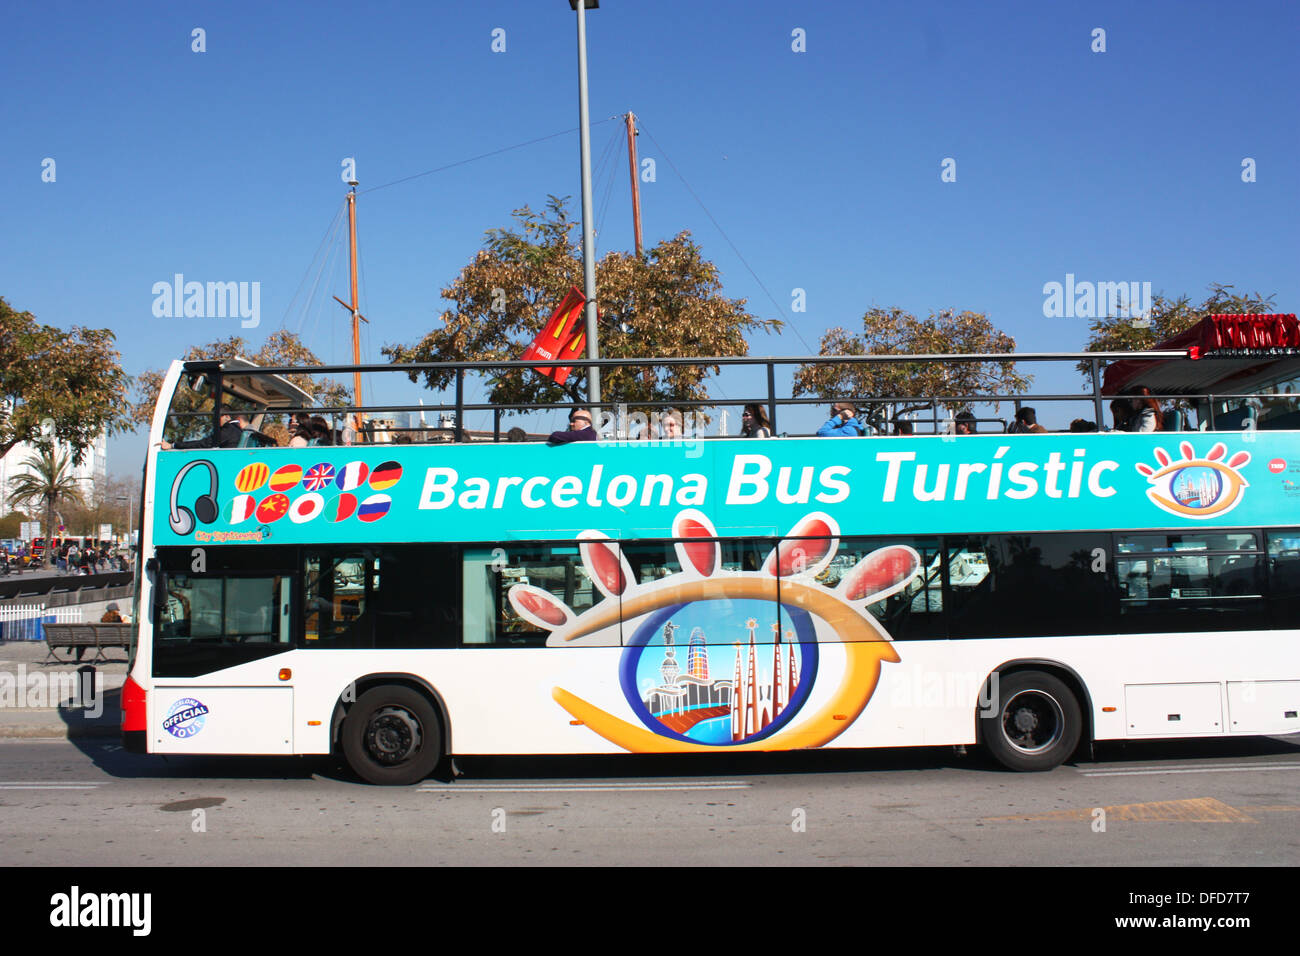 Barcelona open top tourist bus Stock Photo